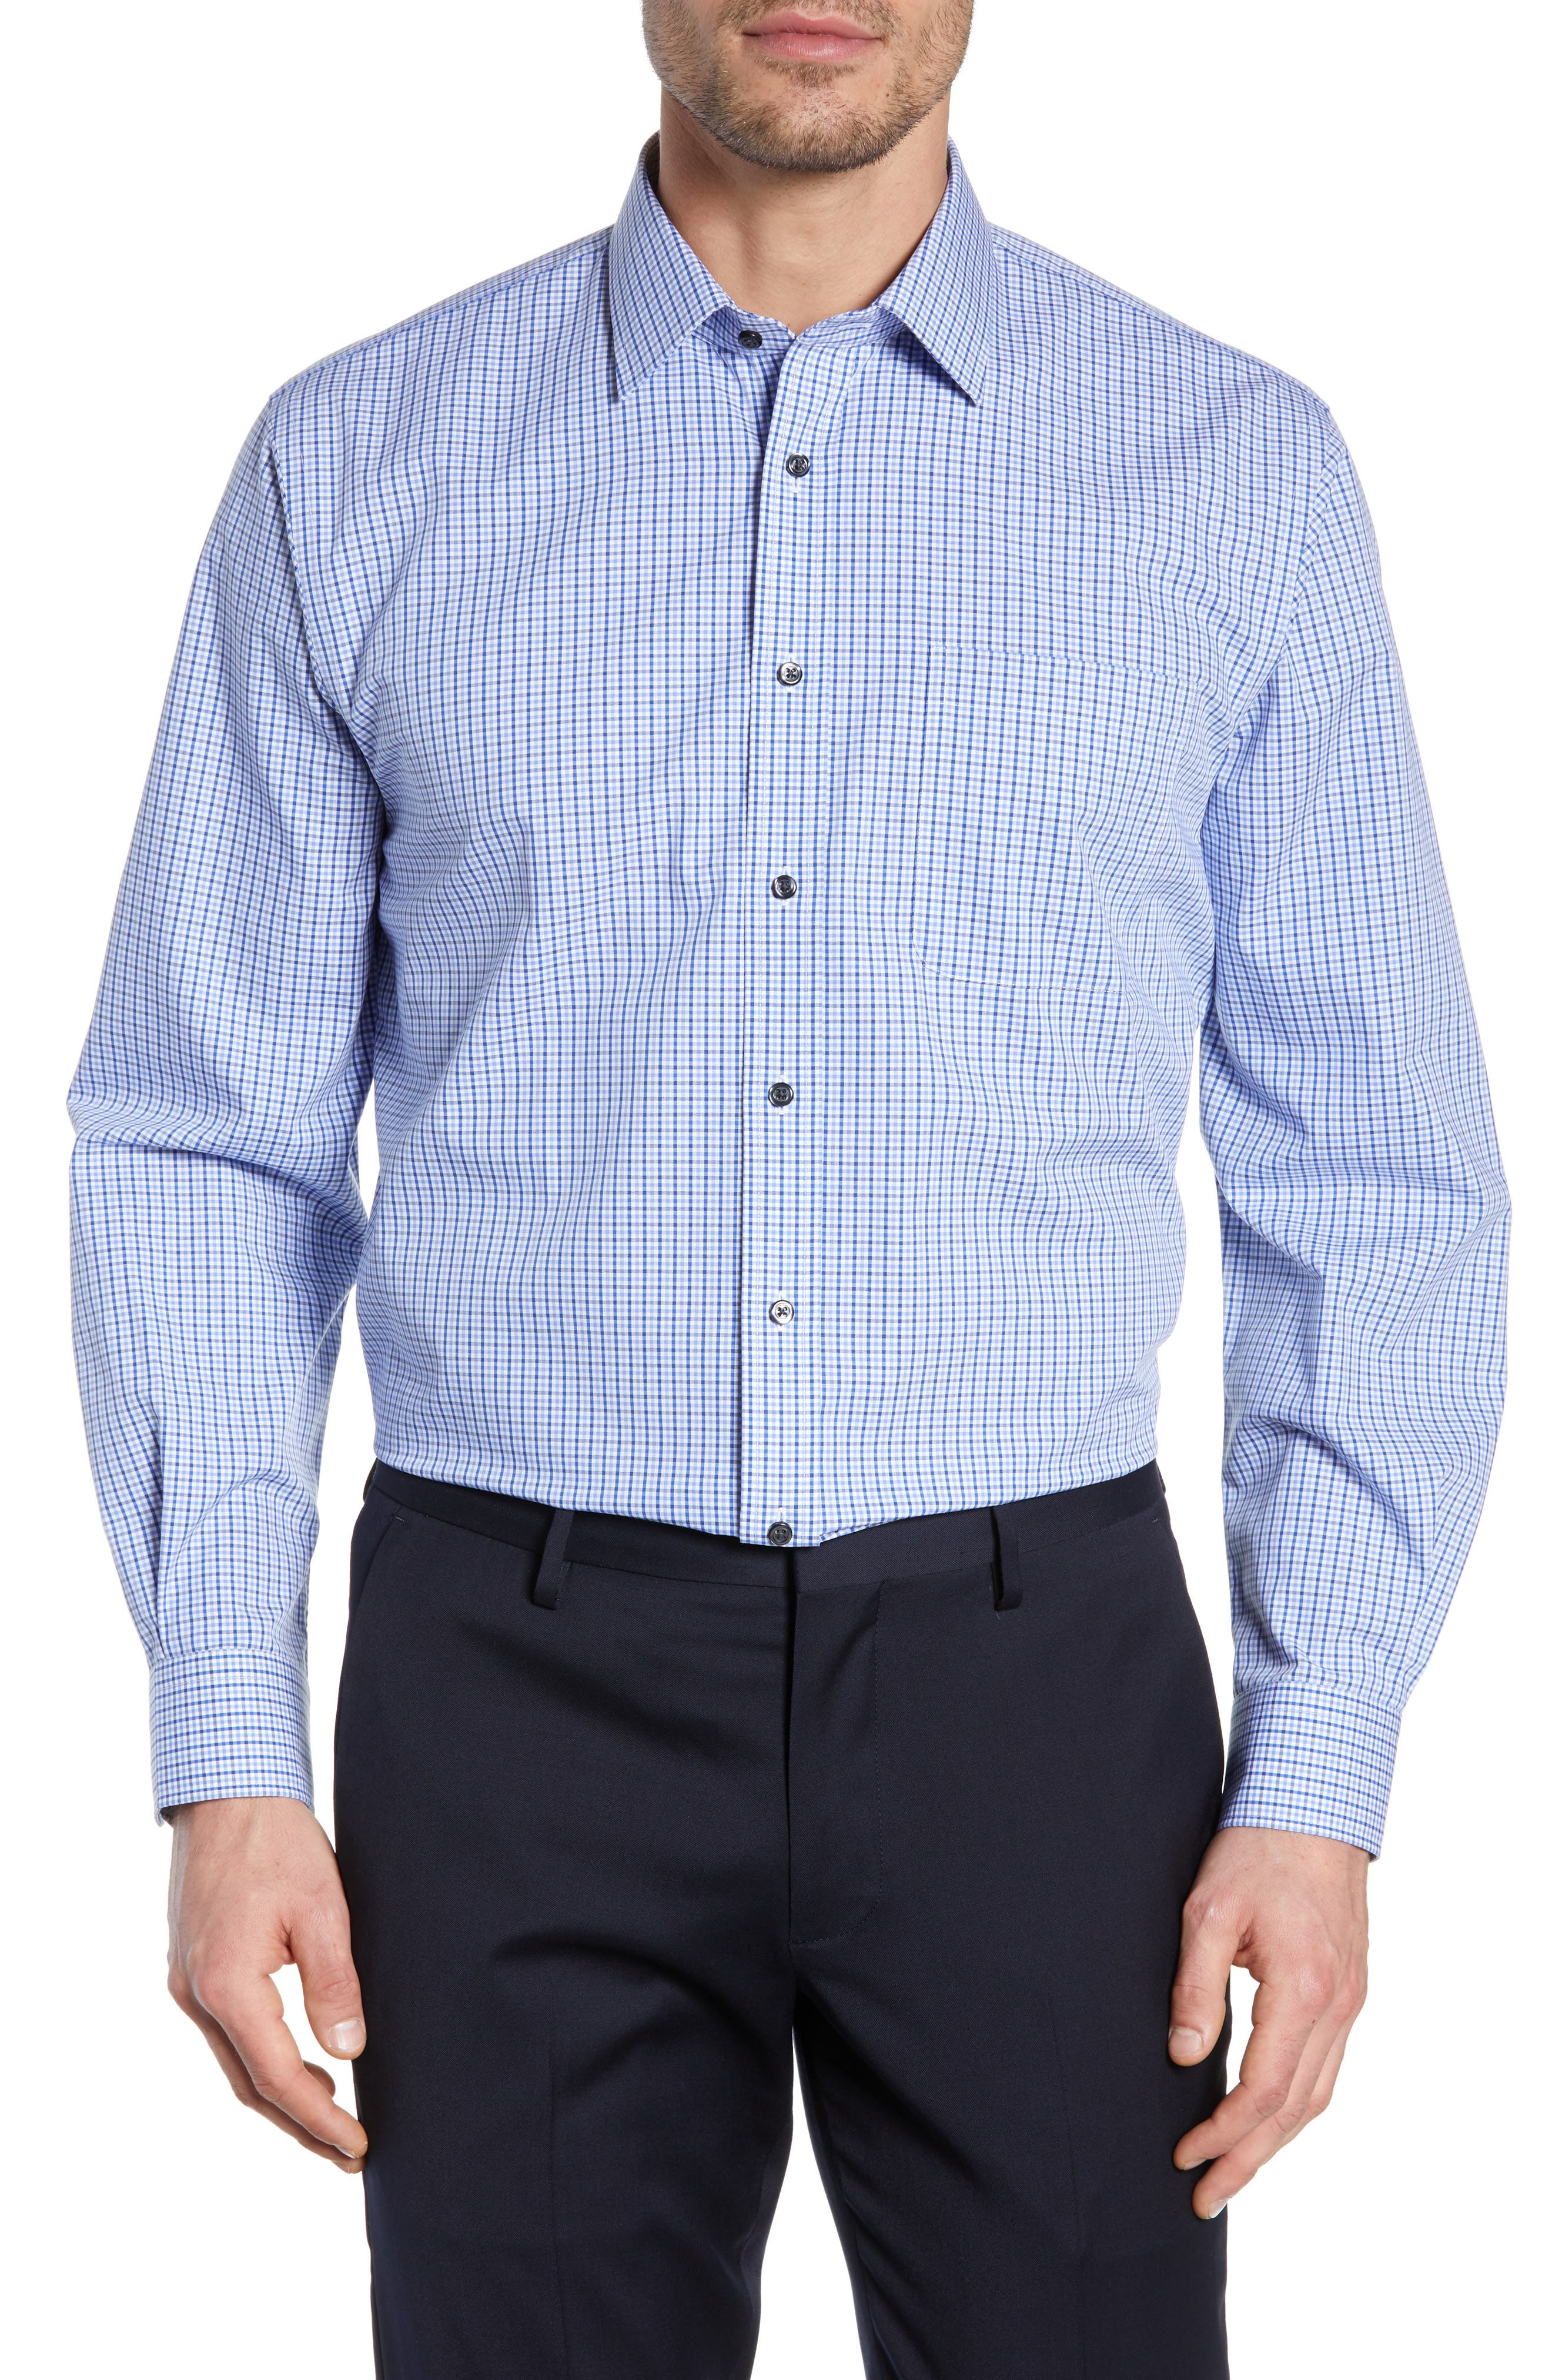 NORDSTROM MEN'S SHOP, Traditional Fit Non-Iron Check Dress Shirt, Main thumbnail 1, color, BLUE MARINE